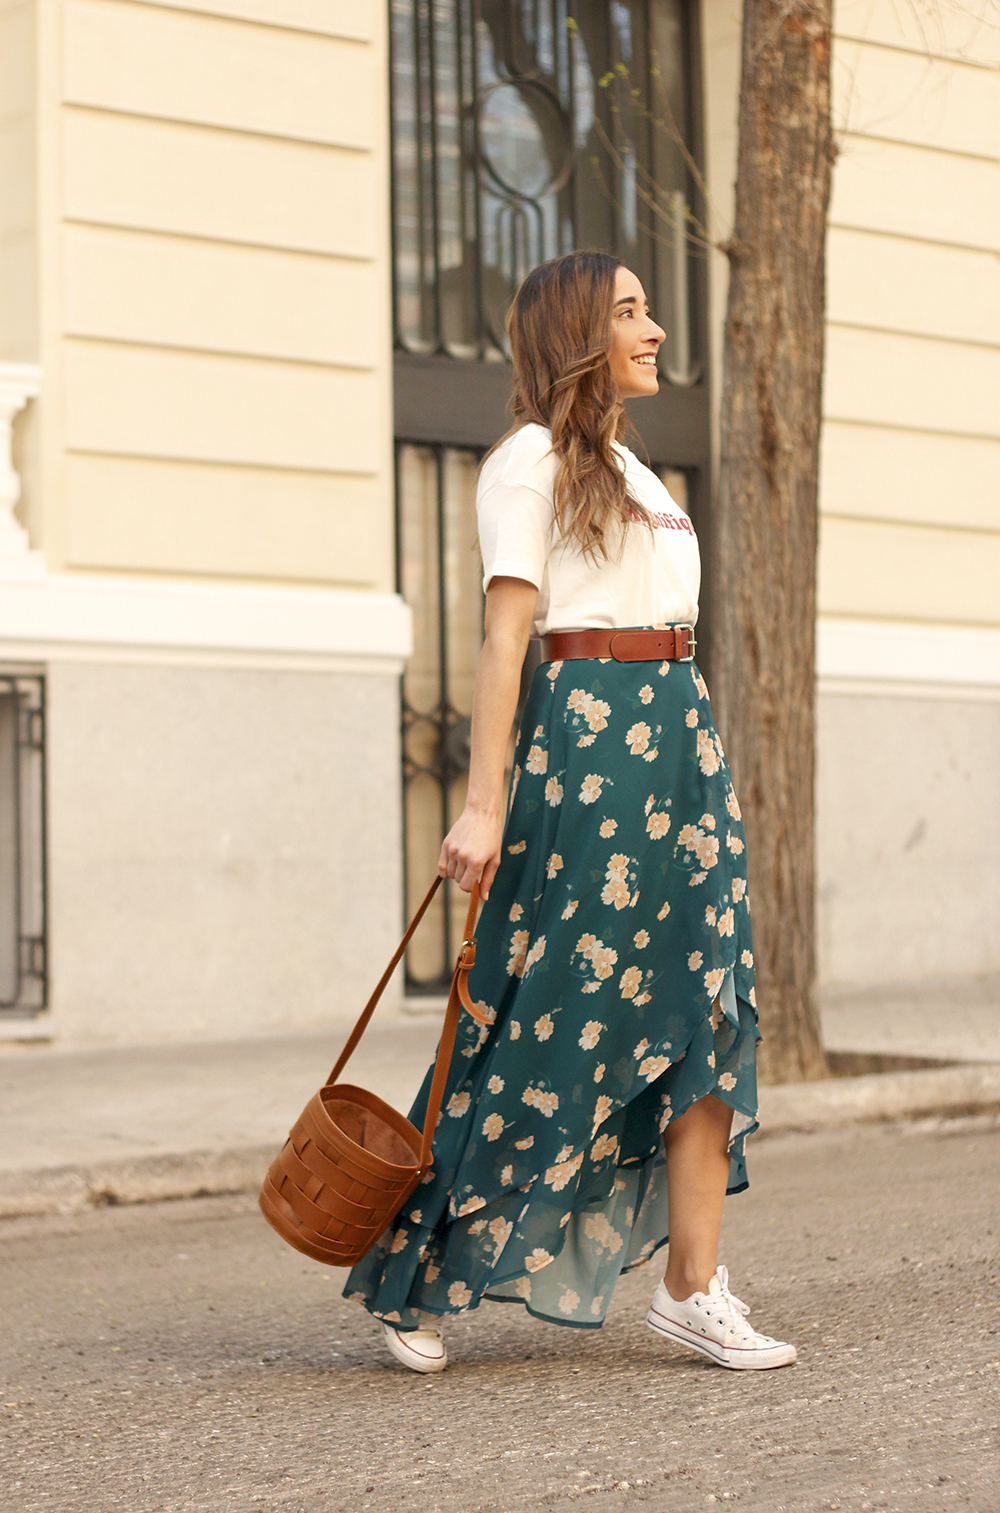 floral maxi converse skirt tshirt find amazon fashion street style outfit 20192